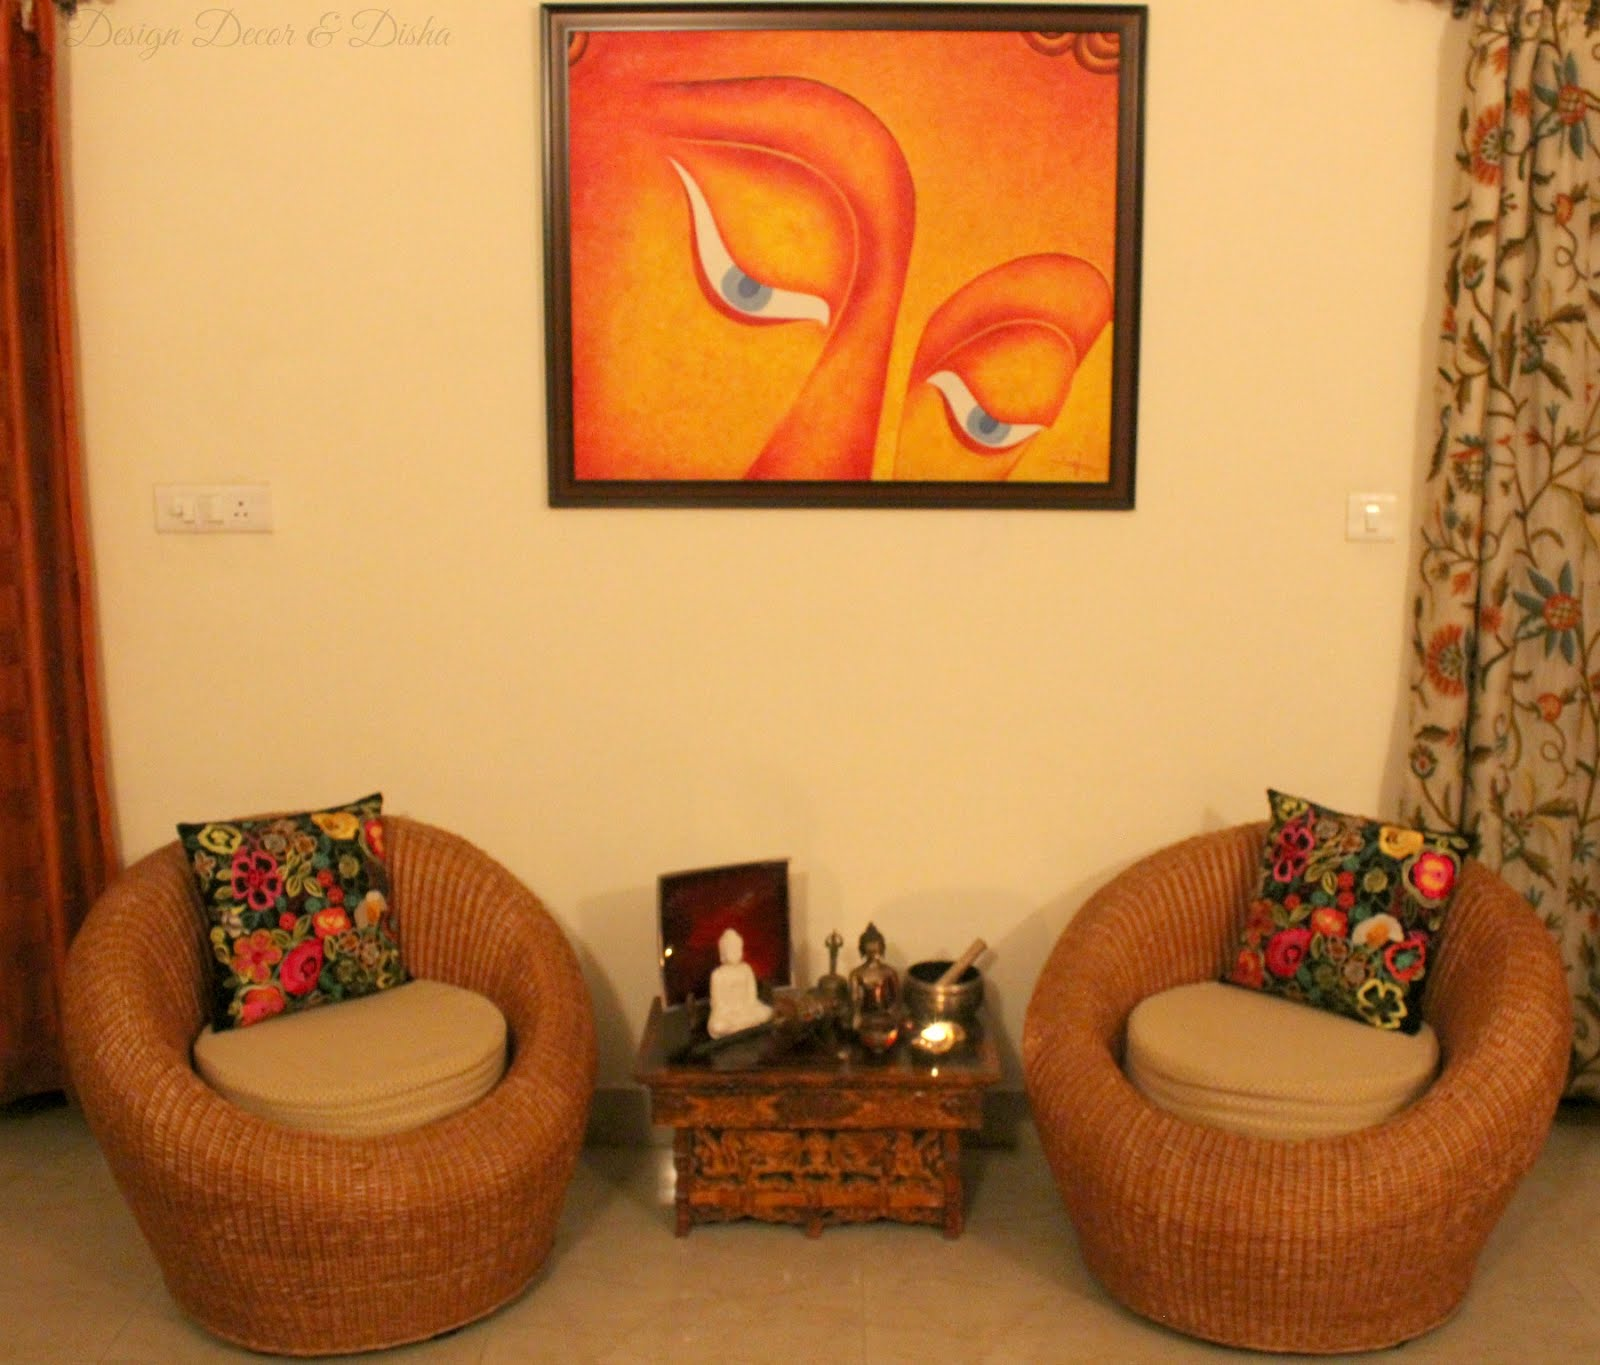 Design decor disha an indian design decor blog home for Home and decor ideas